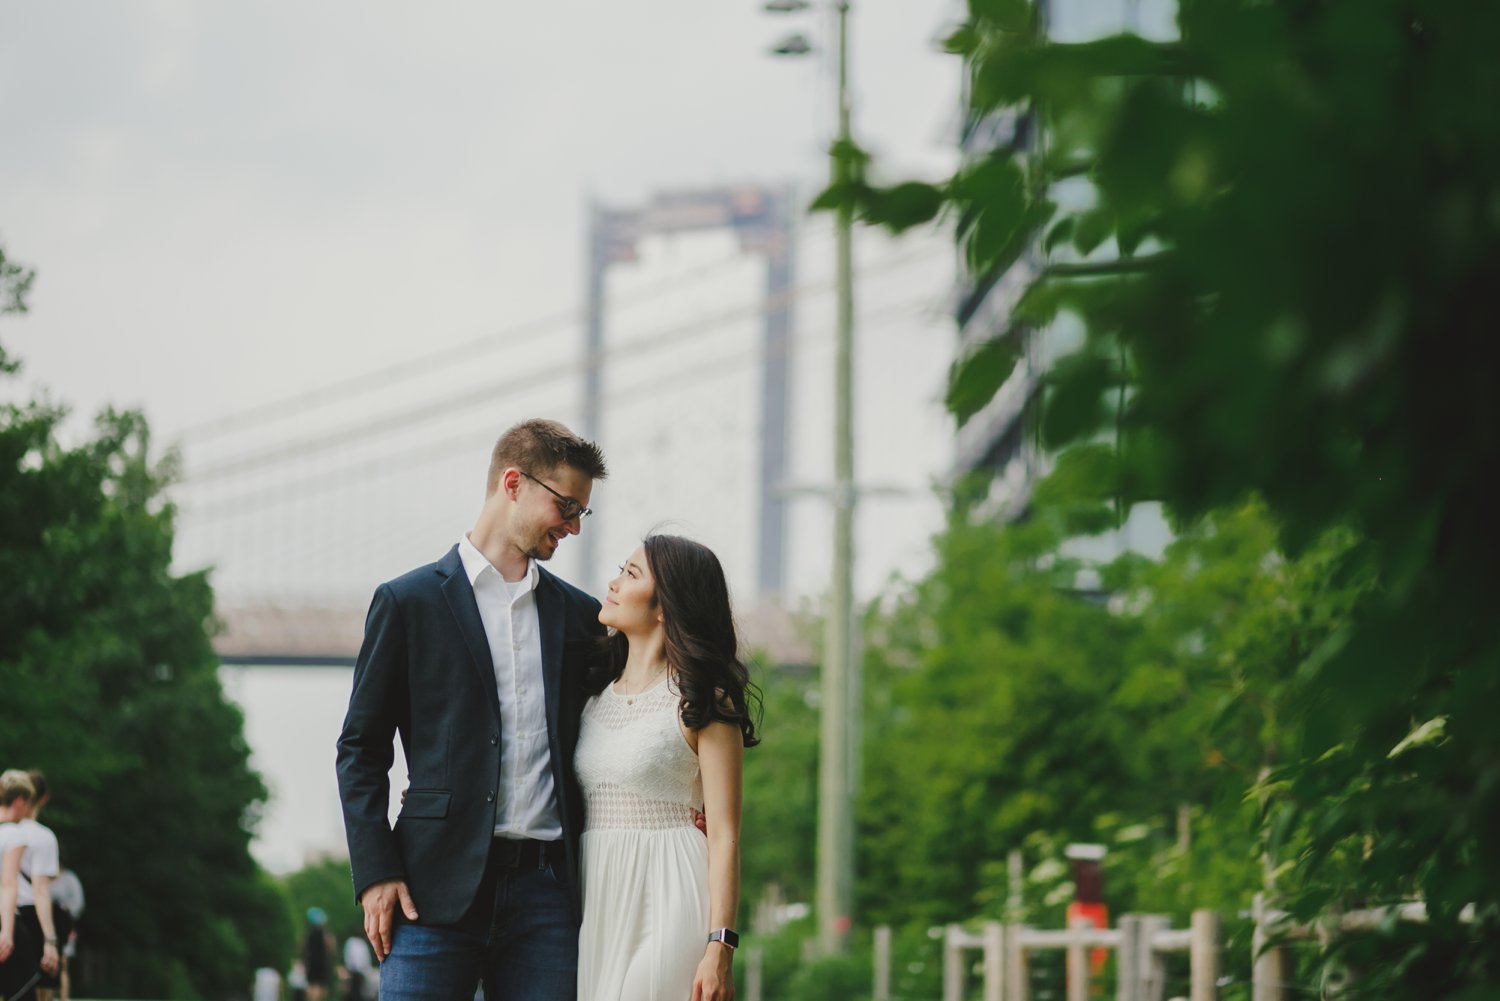 12NYC-NJ-ENGAGEMENT-PHOTOGRAPHY-BY-INTOTHESTORY-MOO-JAE.JPG